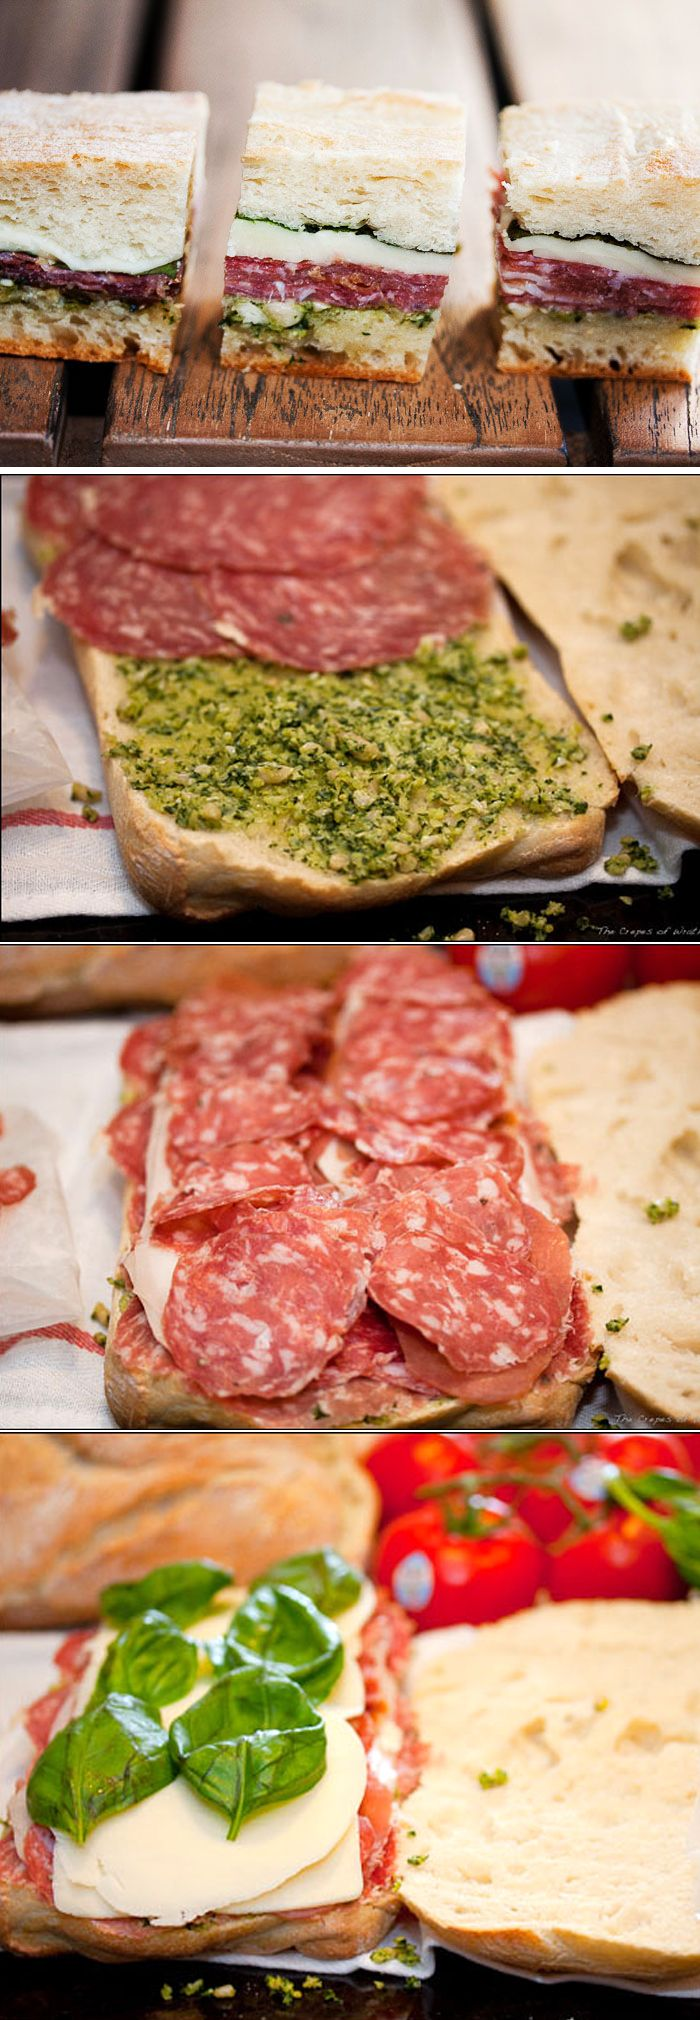 Pressed Picnic Sandwiches: 1 large loaf ciabatta, 3-4 T fresh pesto, ¼ lb sliced sweet sopressata, 3-4 slices prosciutto, 3-4 slices provolone, 3-4 slices mozzarella, 6-8 basil leaves